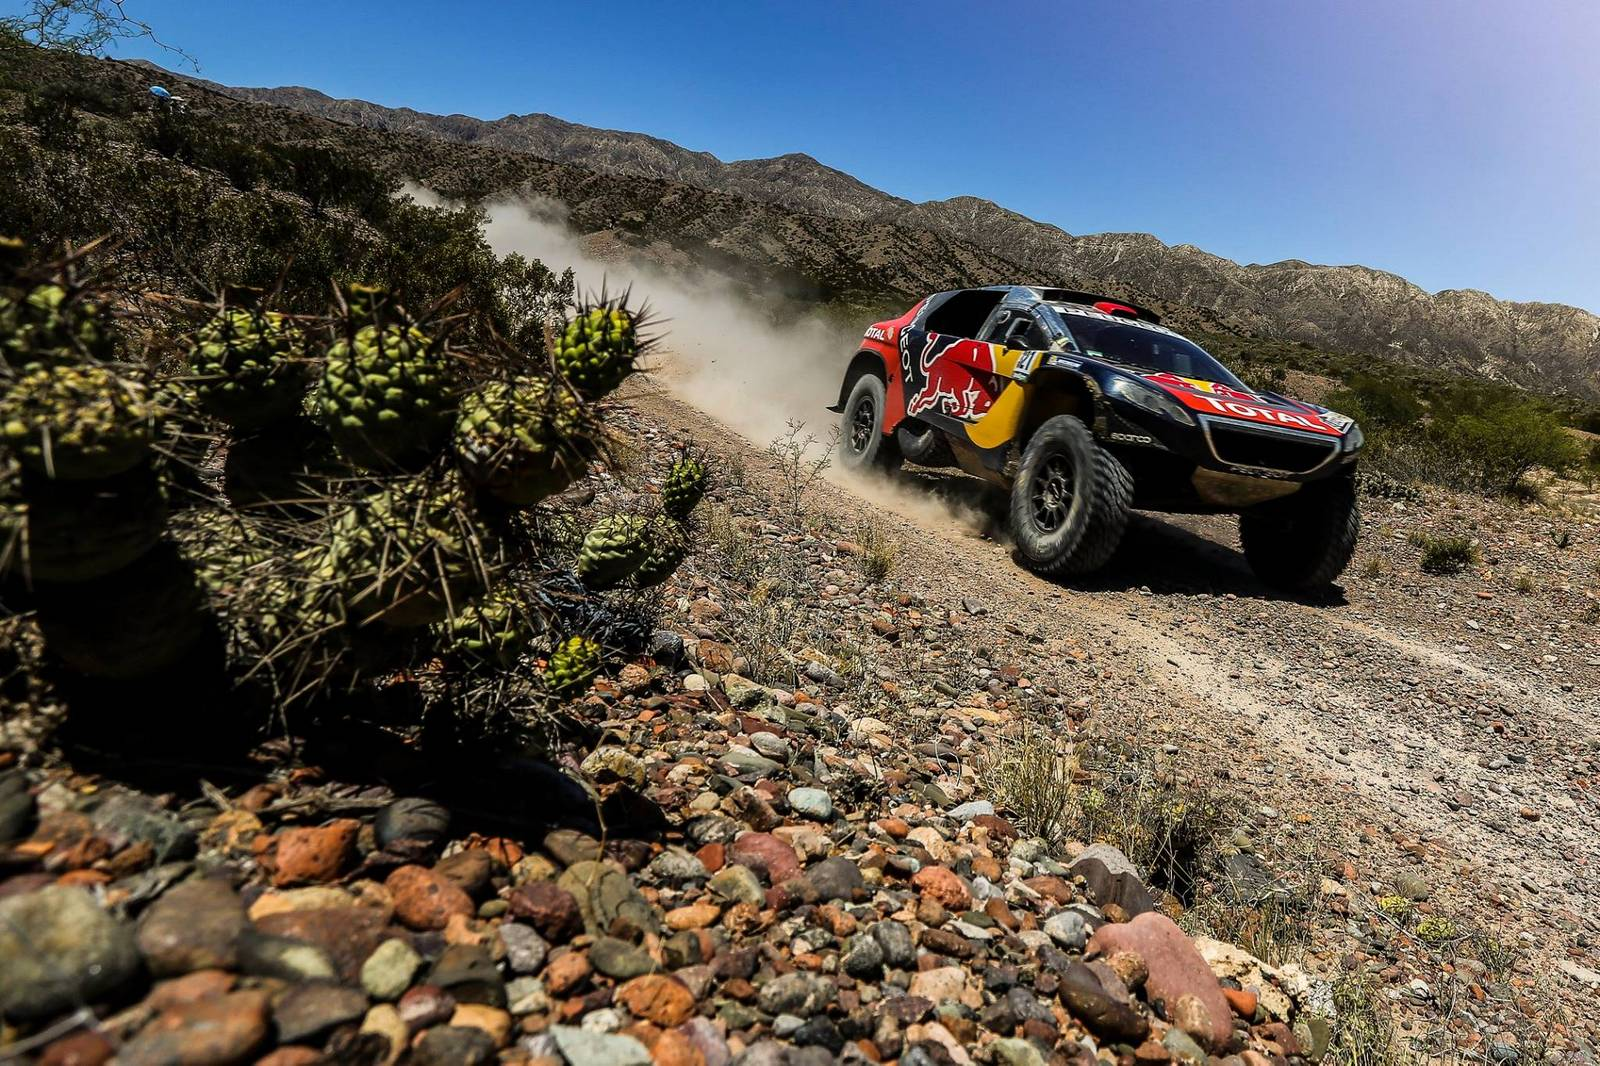 dakar rally 2016 stage 11 1